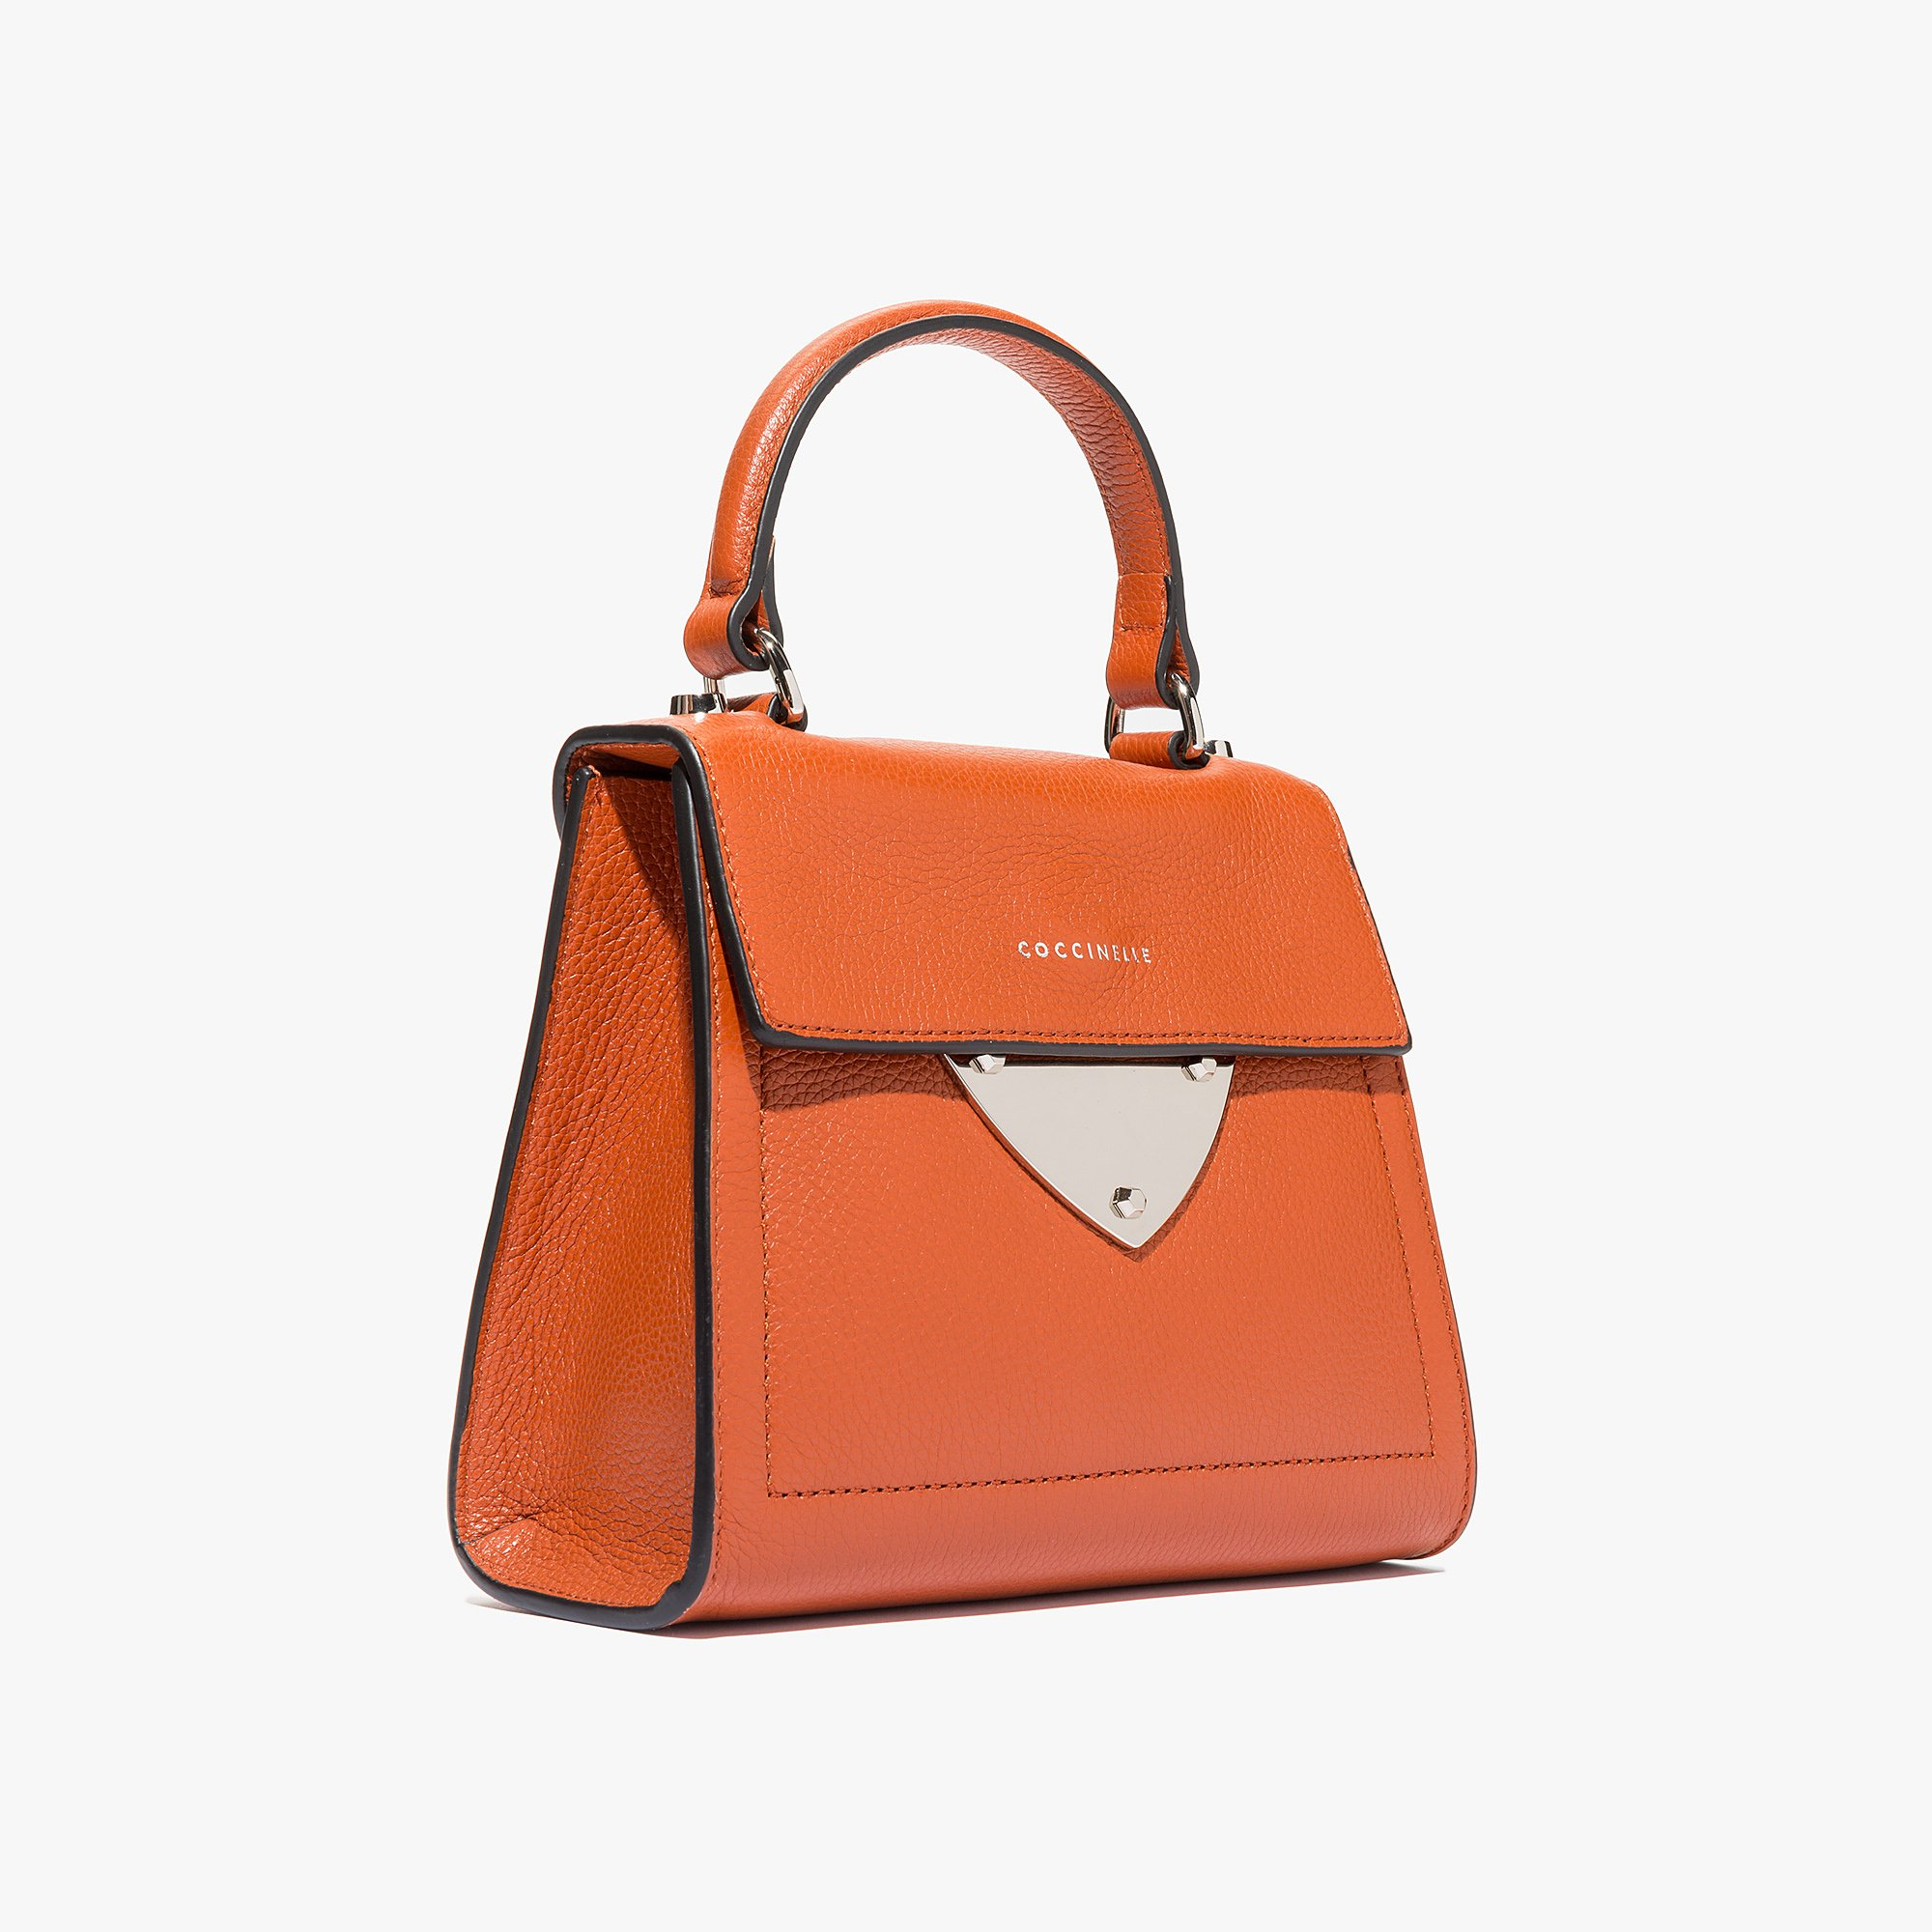 Coccinelle B14 leather mini bag